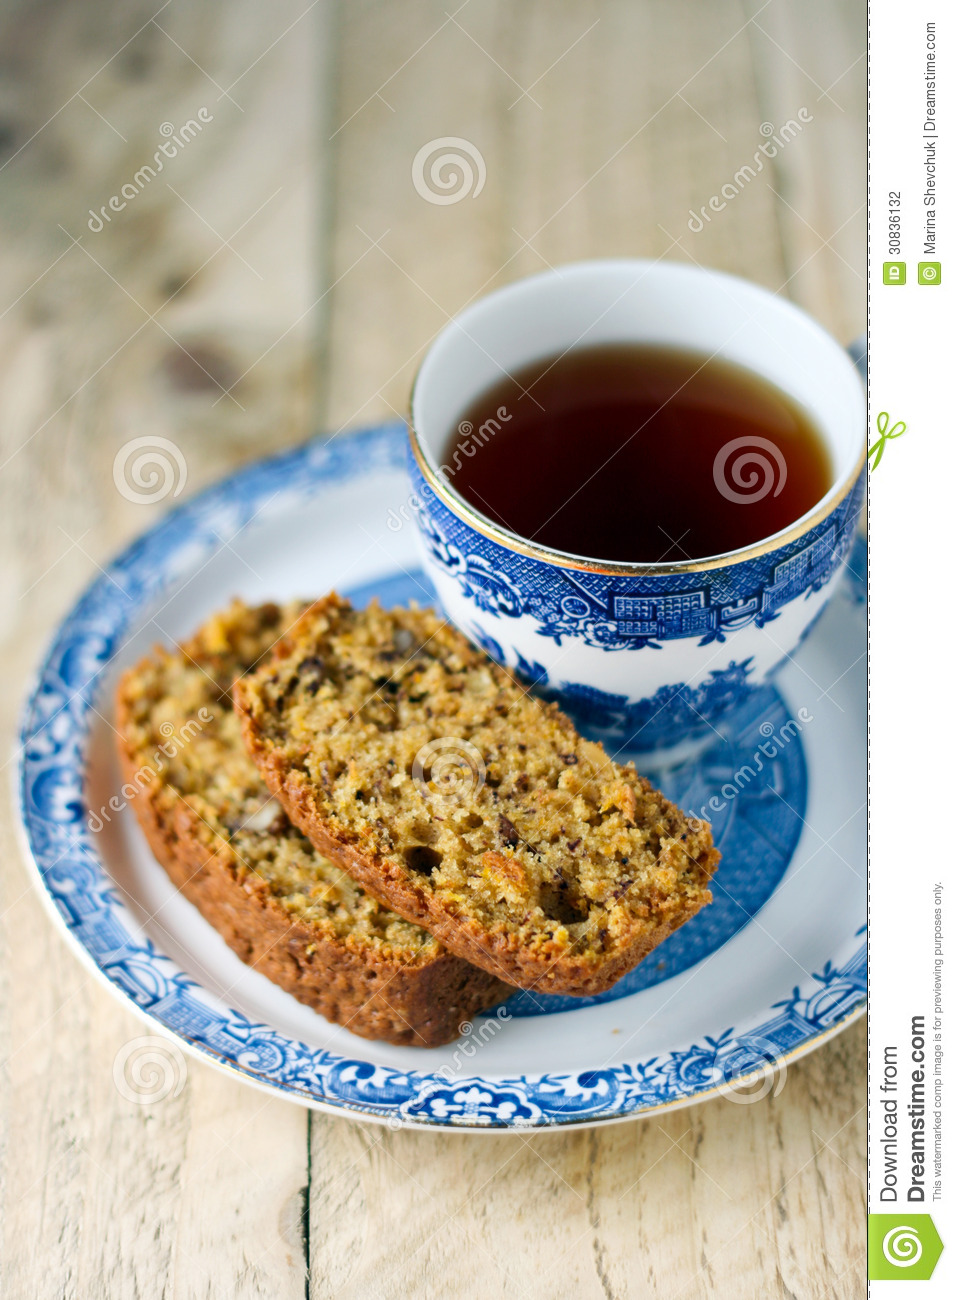 Pumpkin And Nut Cake Stock Photography - Image: 30836132